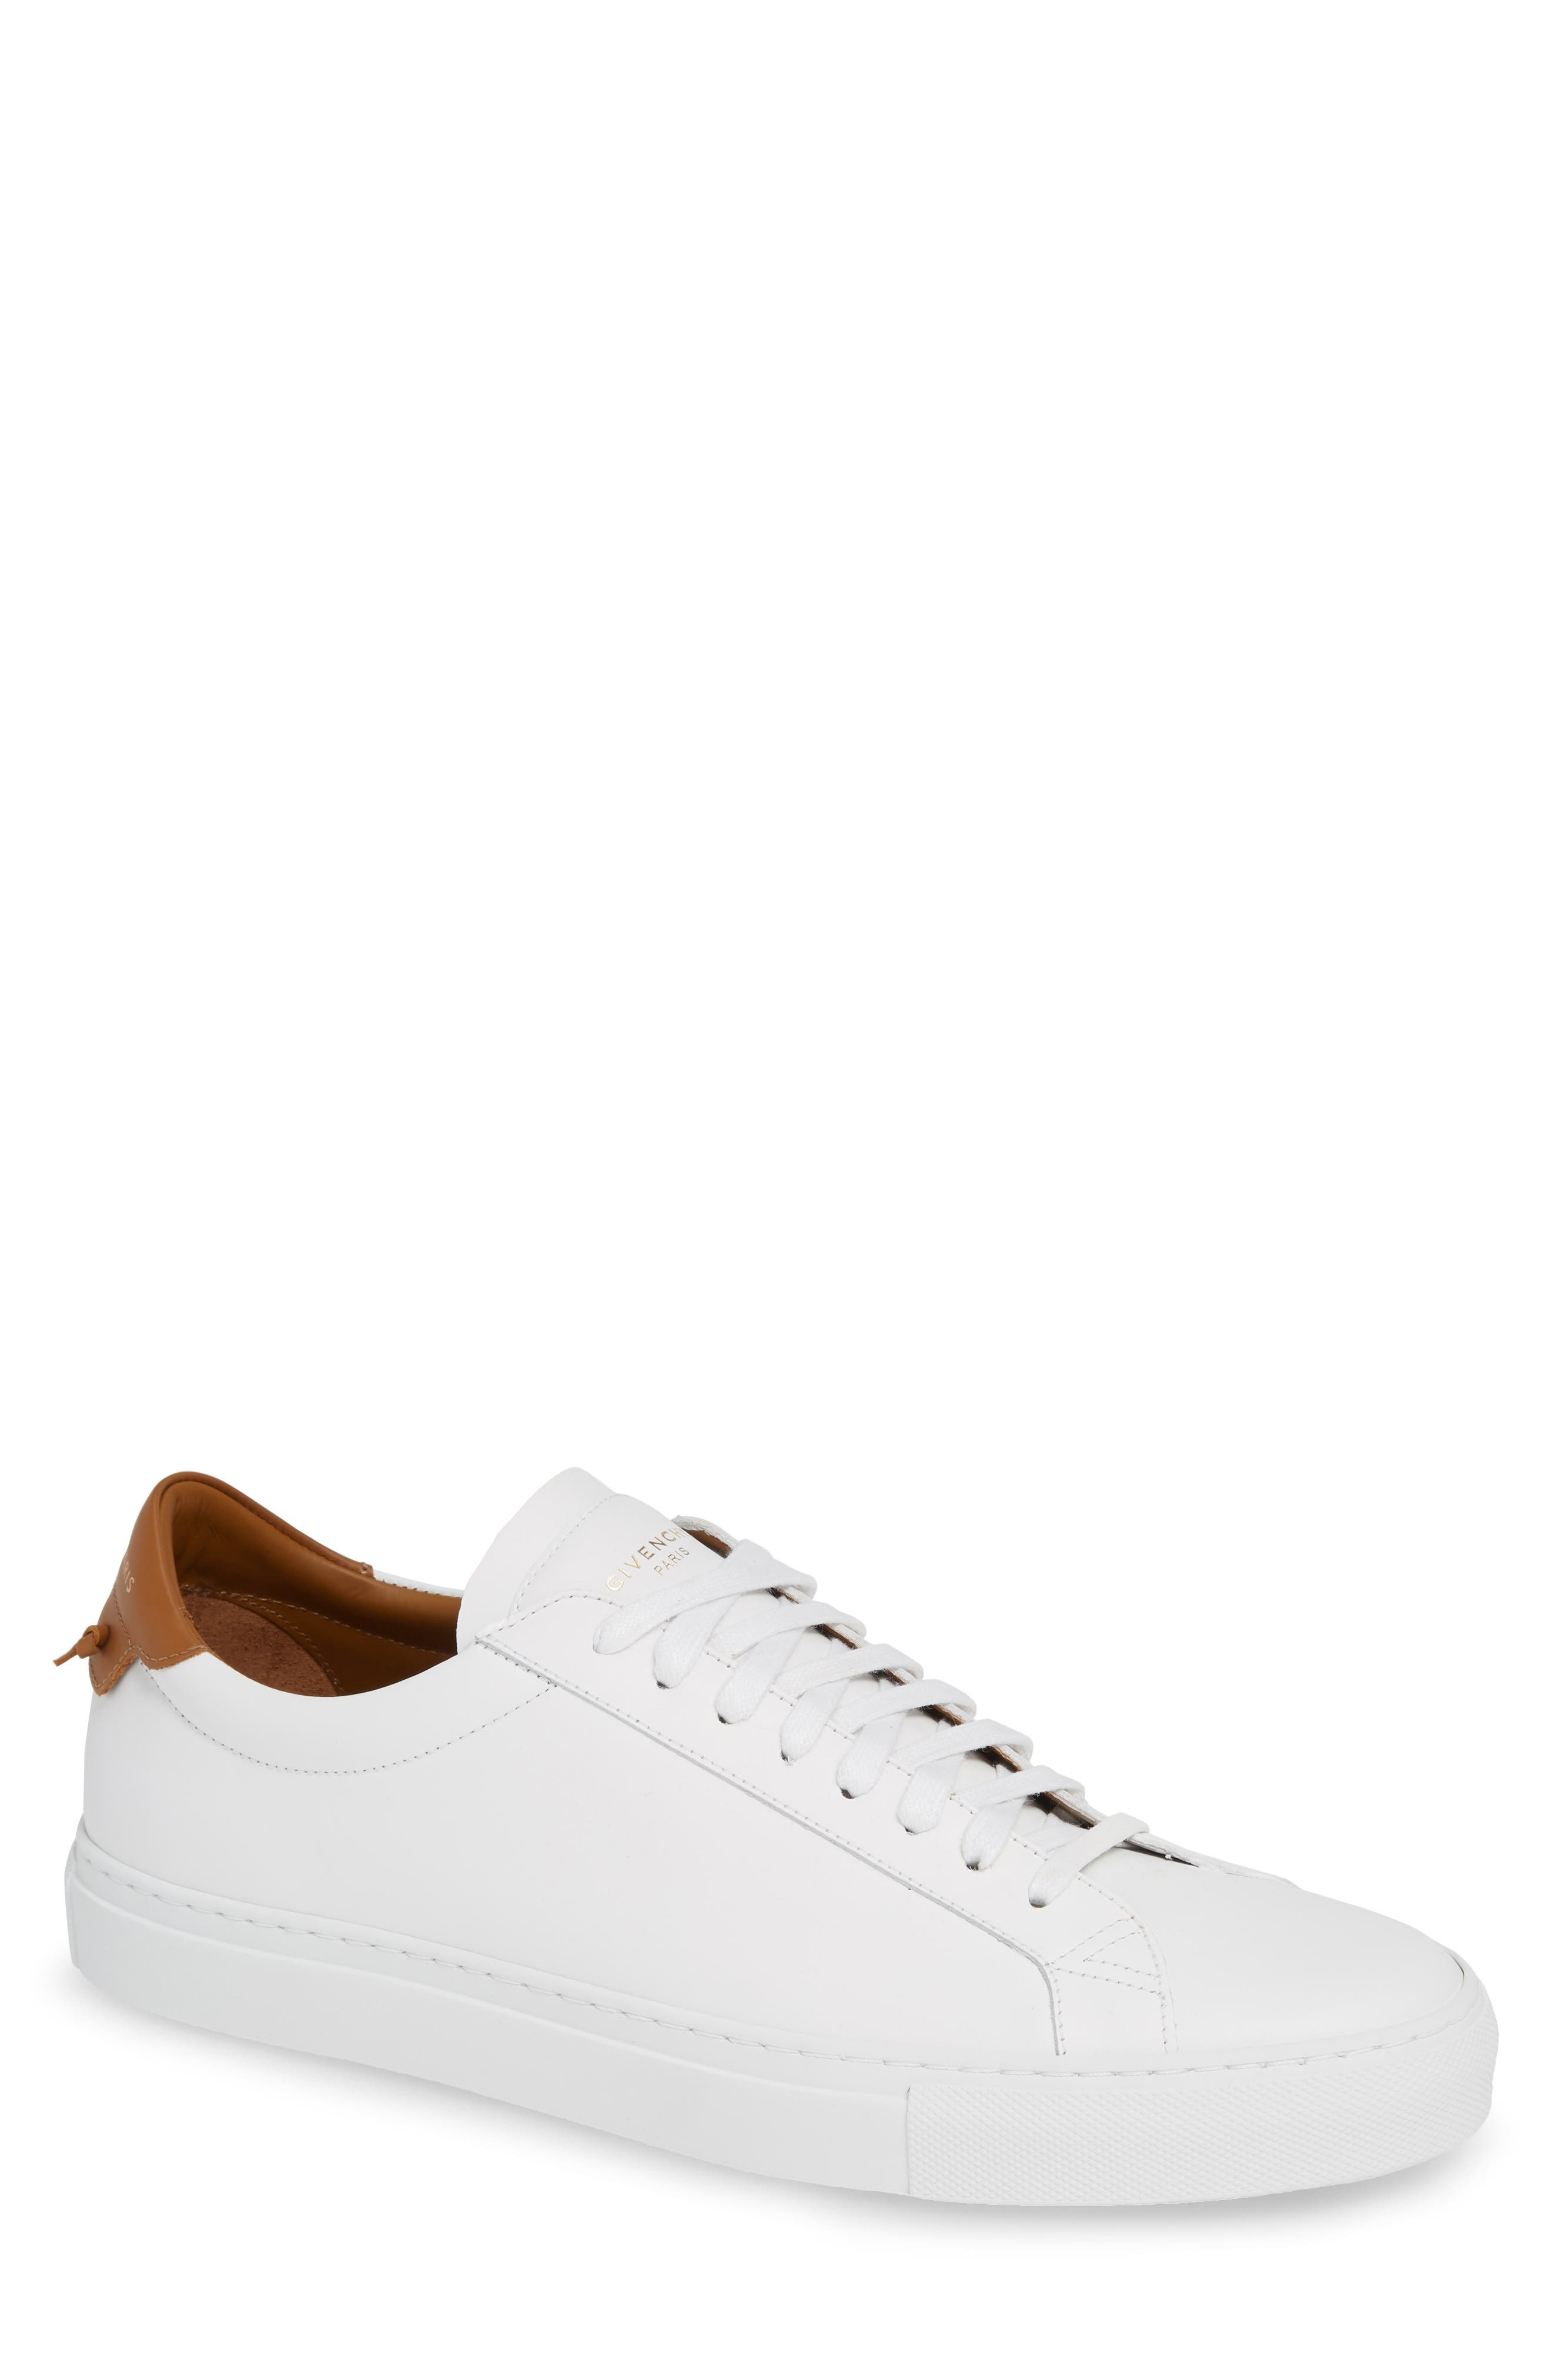 GIVENCHY Urban Knots Low Sneaker, Main, color, WHITE/ BEIGE